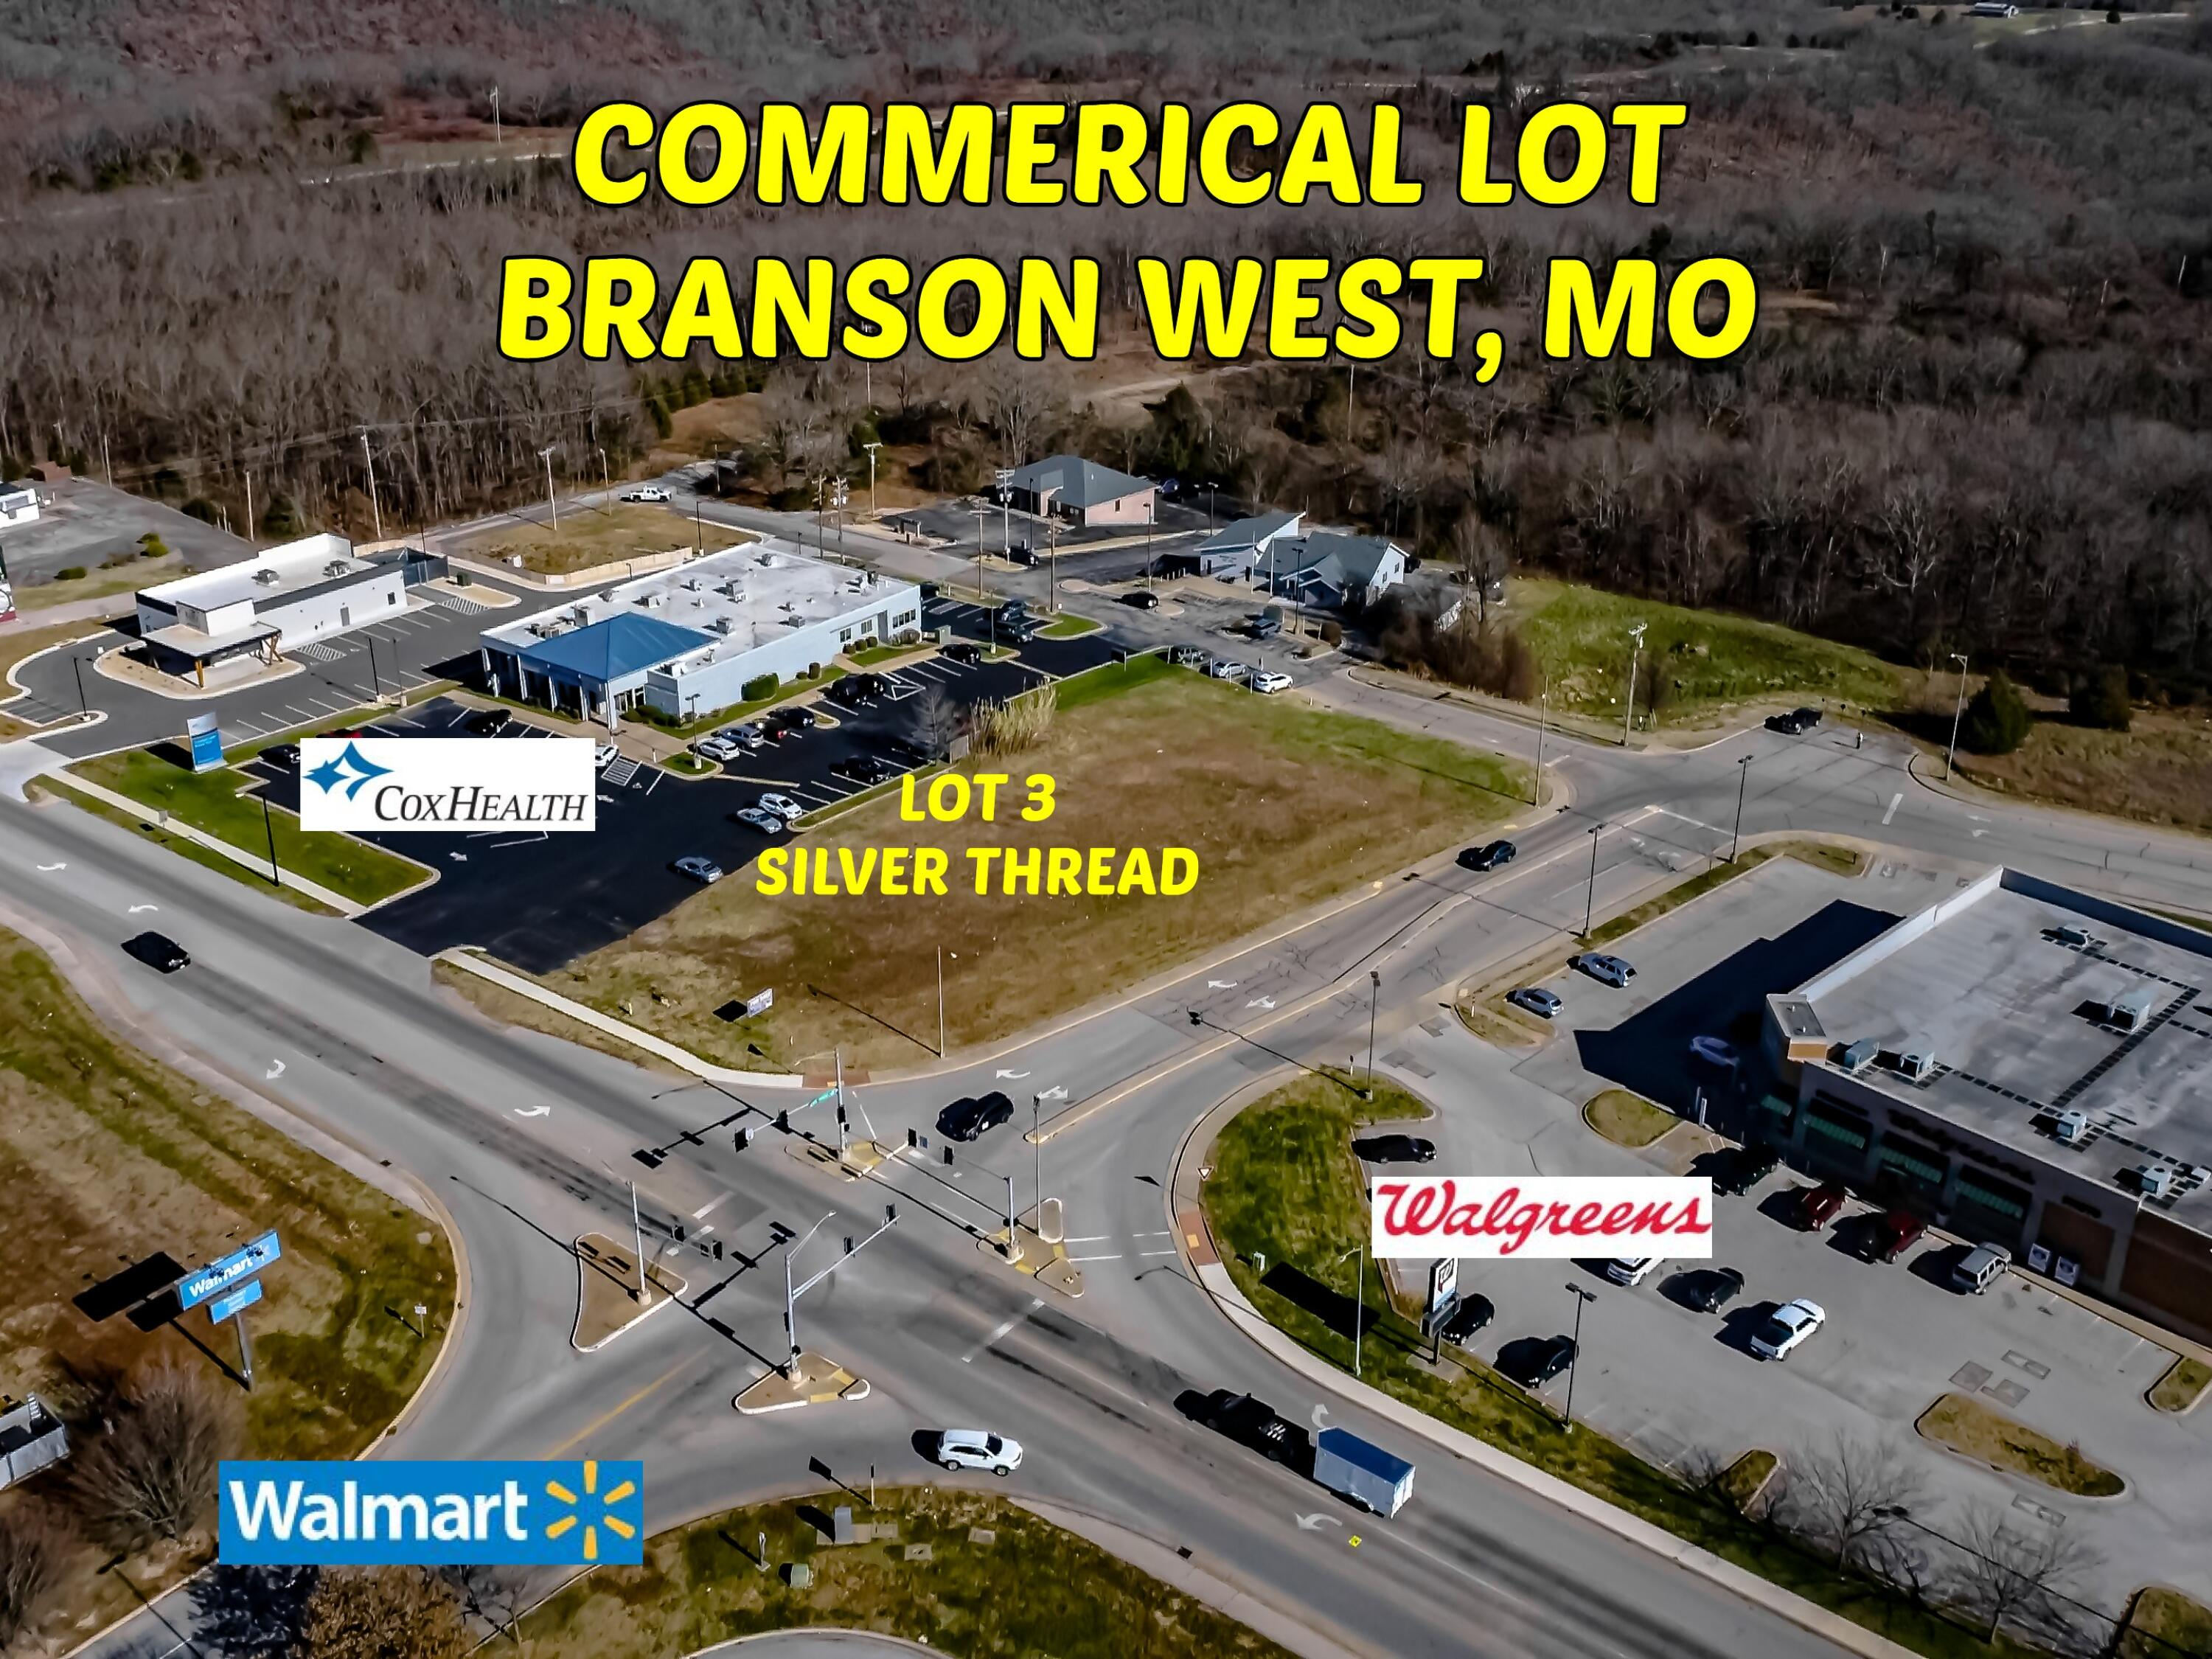 18410 Business 13, Branson West, MO 65737 Property Photo